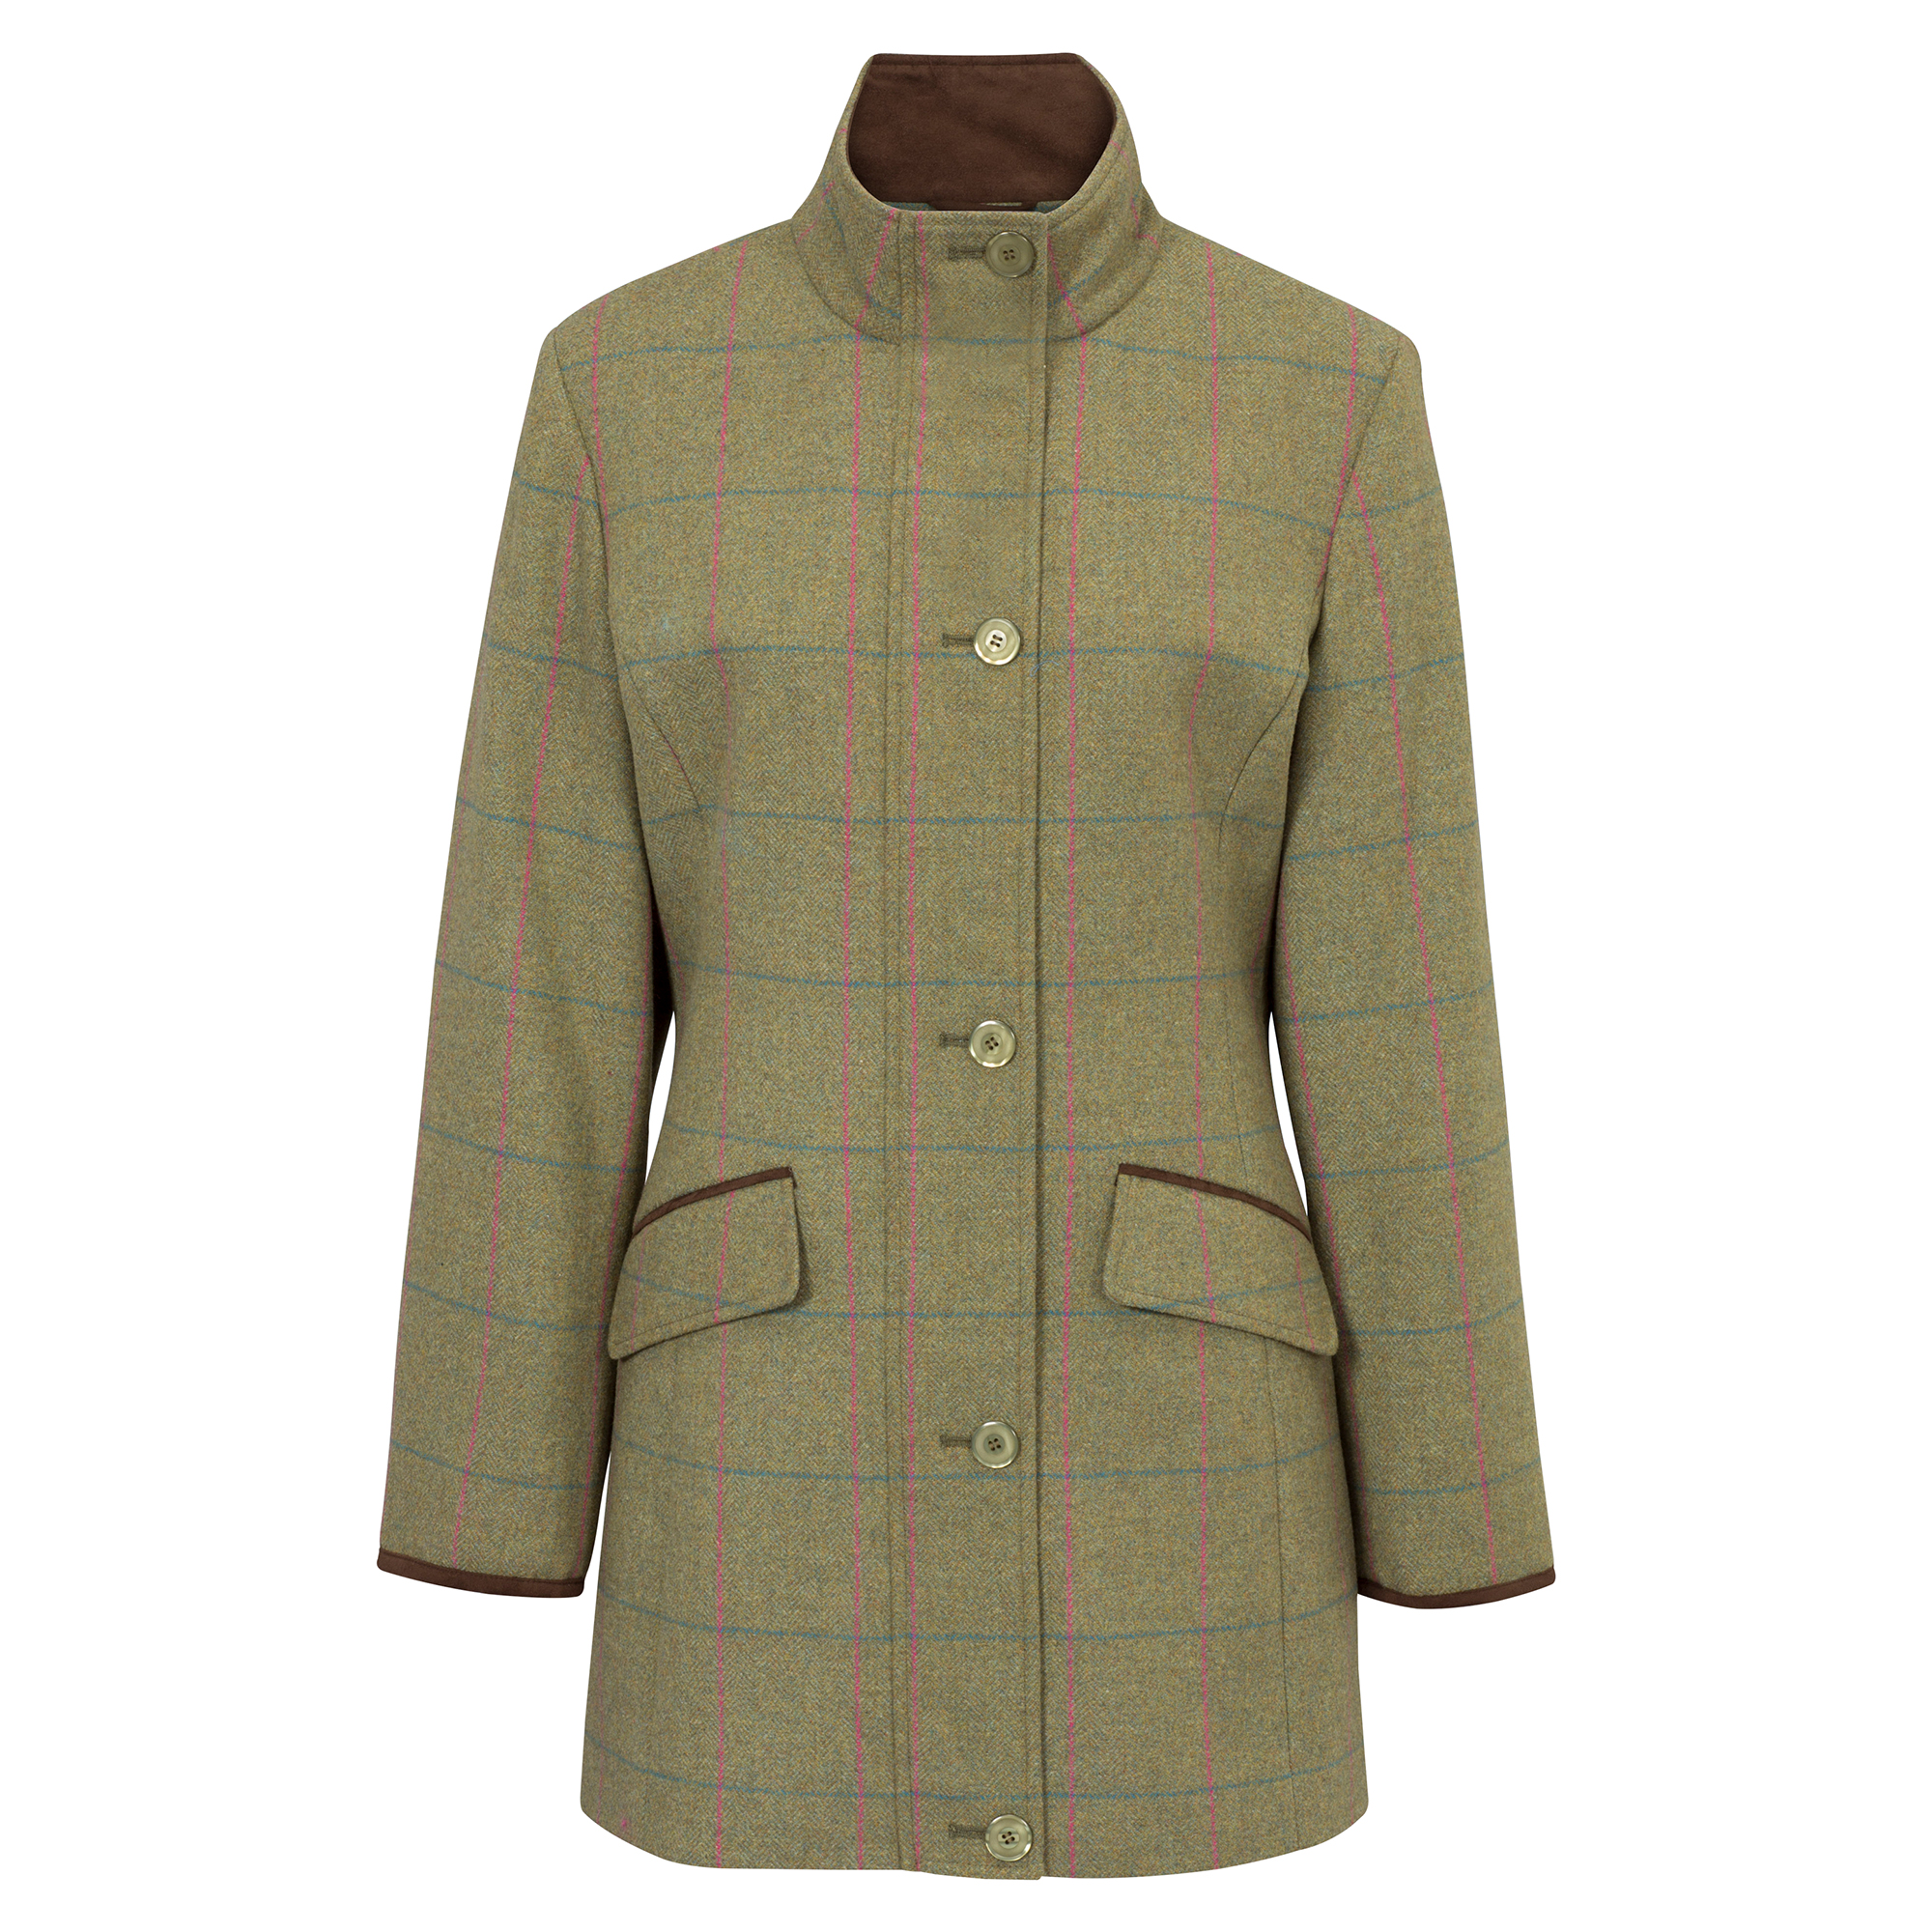 Alan Paine Combrook Ladies Field Jacket in Juniper.jpg